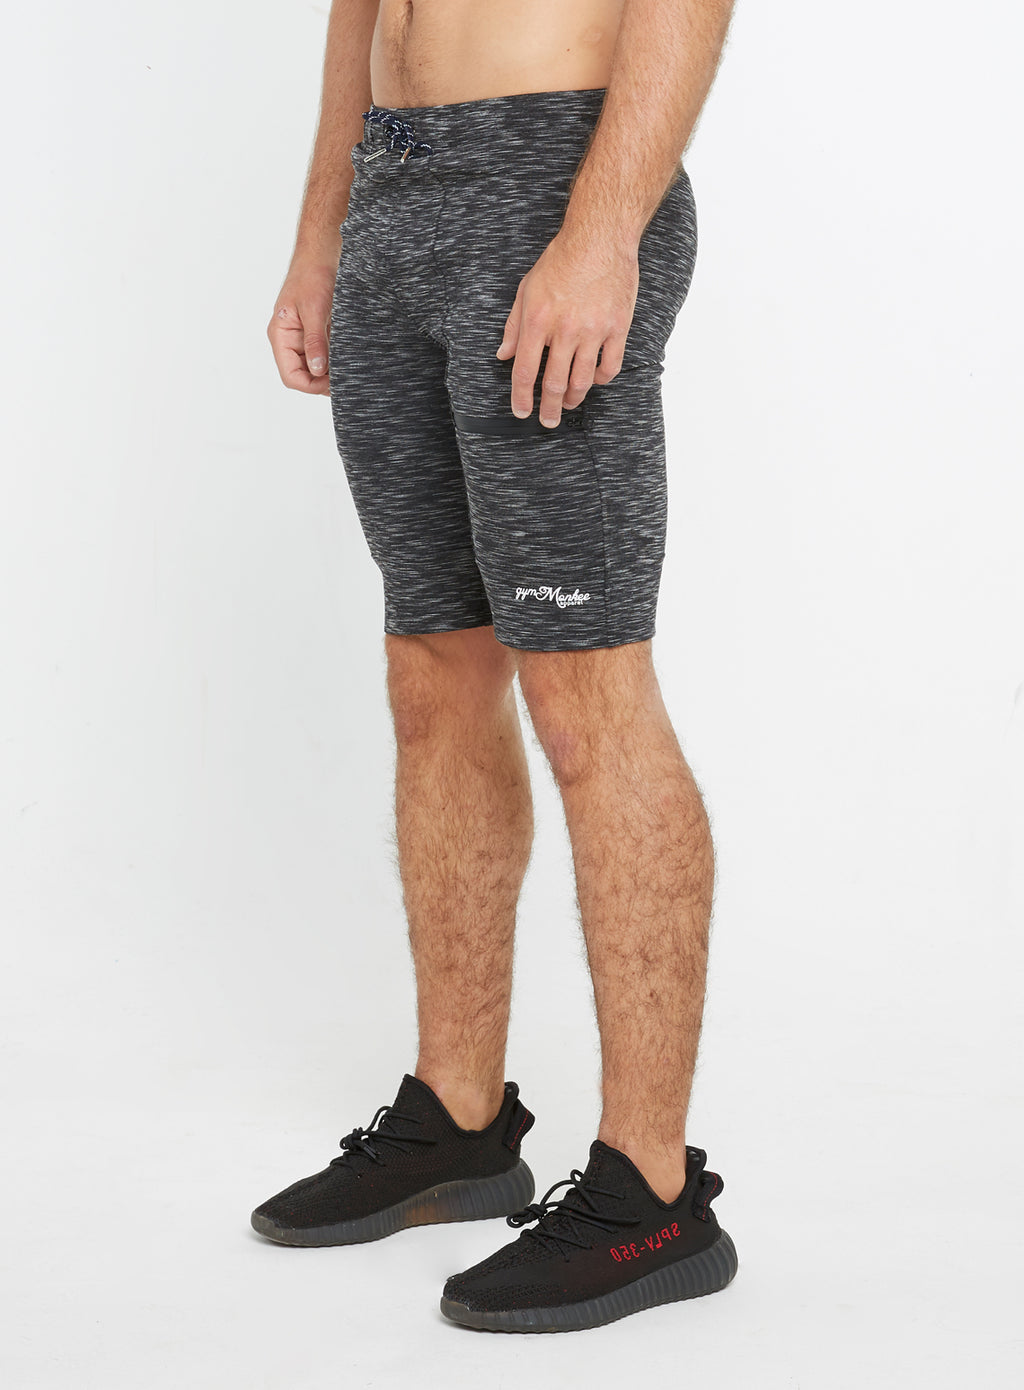 Gym Monkee - Black Striped Shorts LEFT